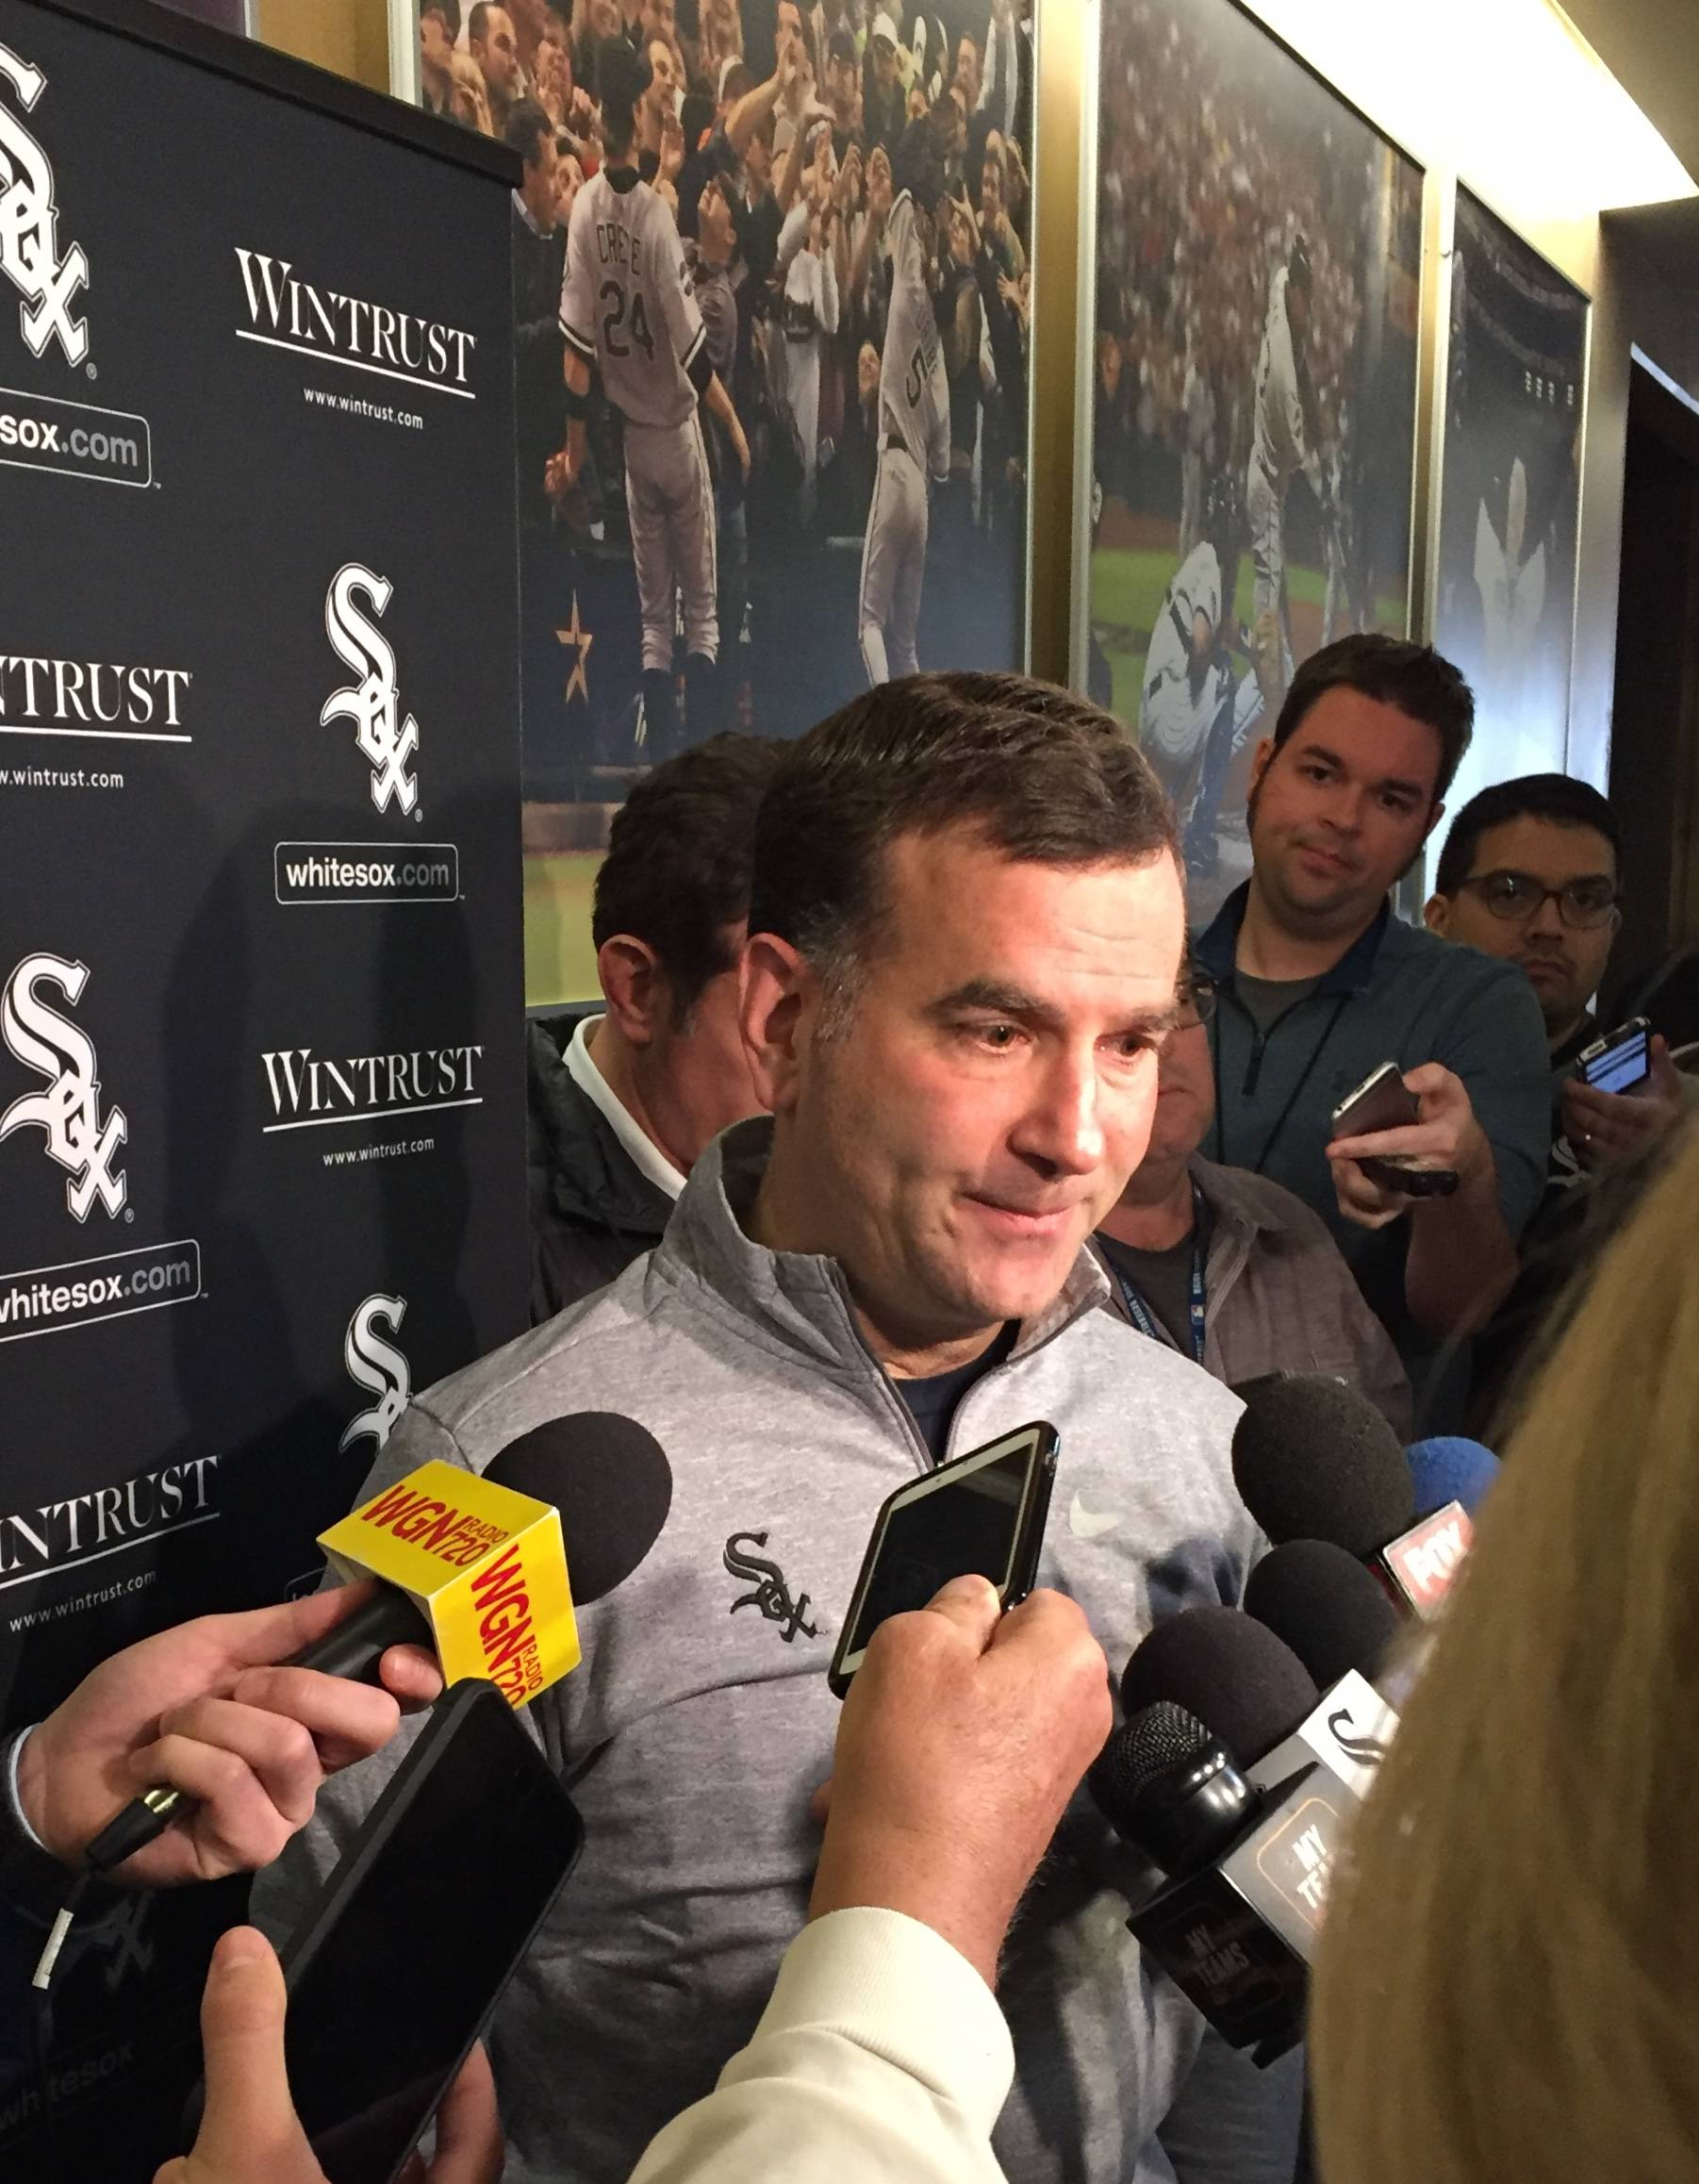 White Sox general manager Rick Hahn said he's not happy about Manny Machado signing with the Padres, but he's not going to let the decision darken a bright future.